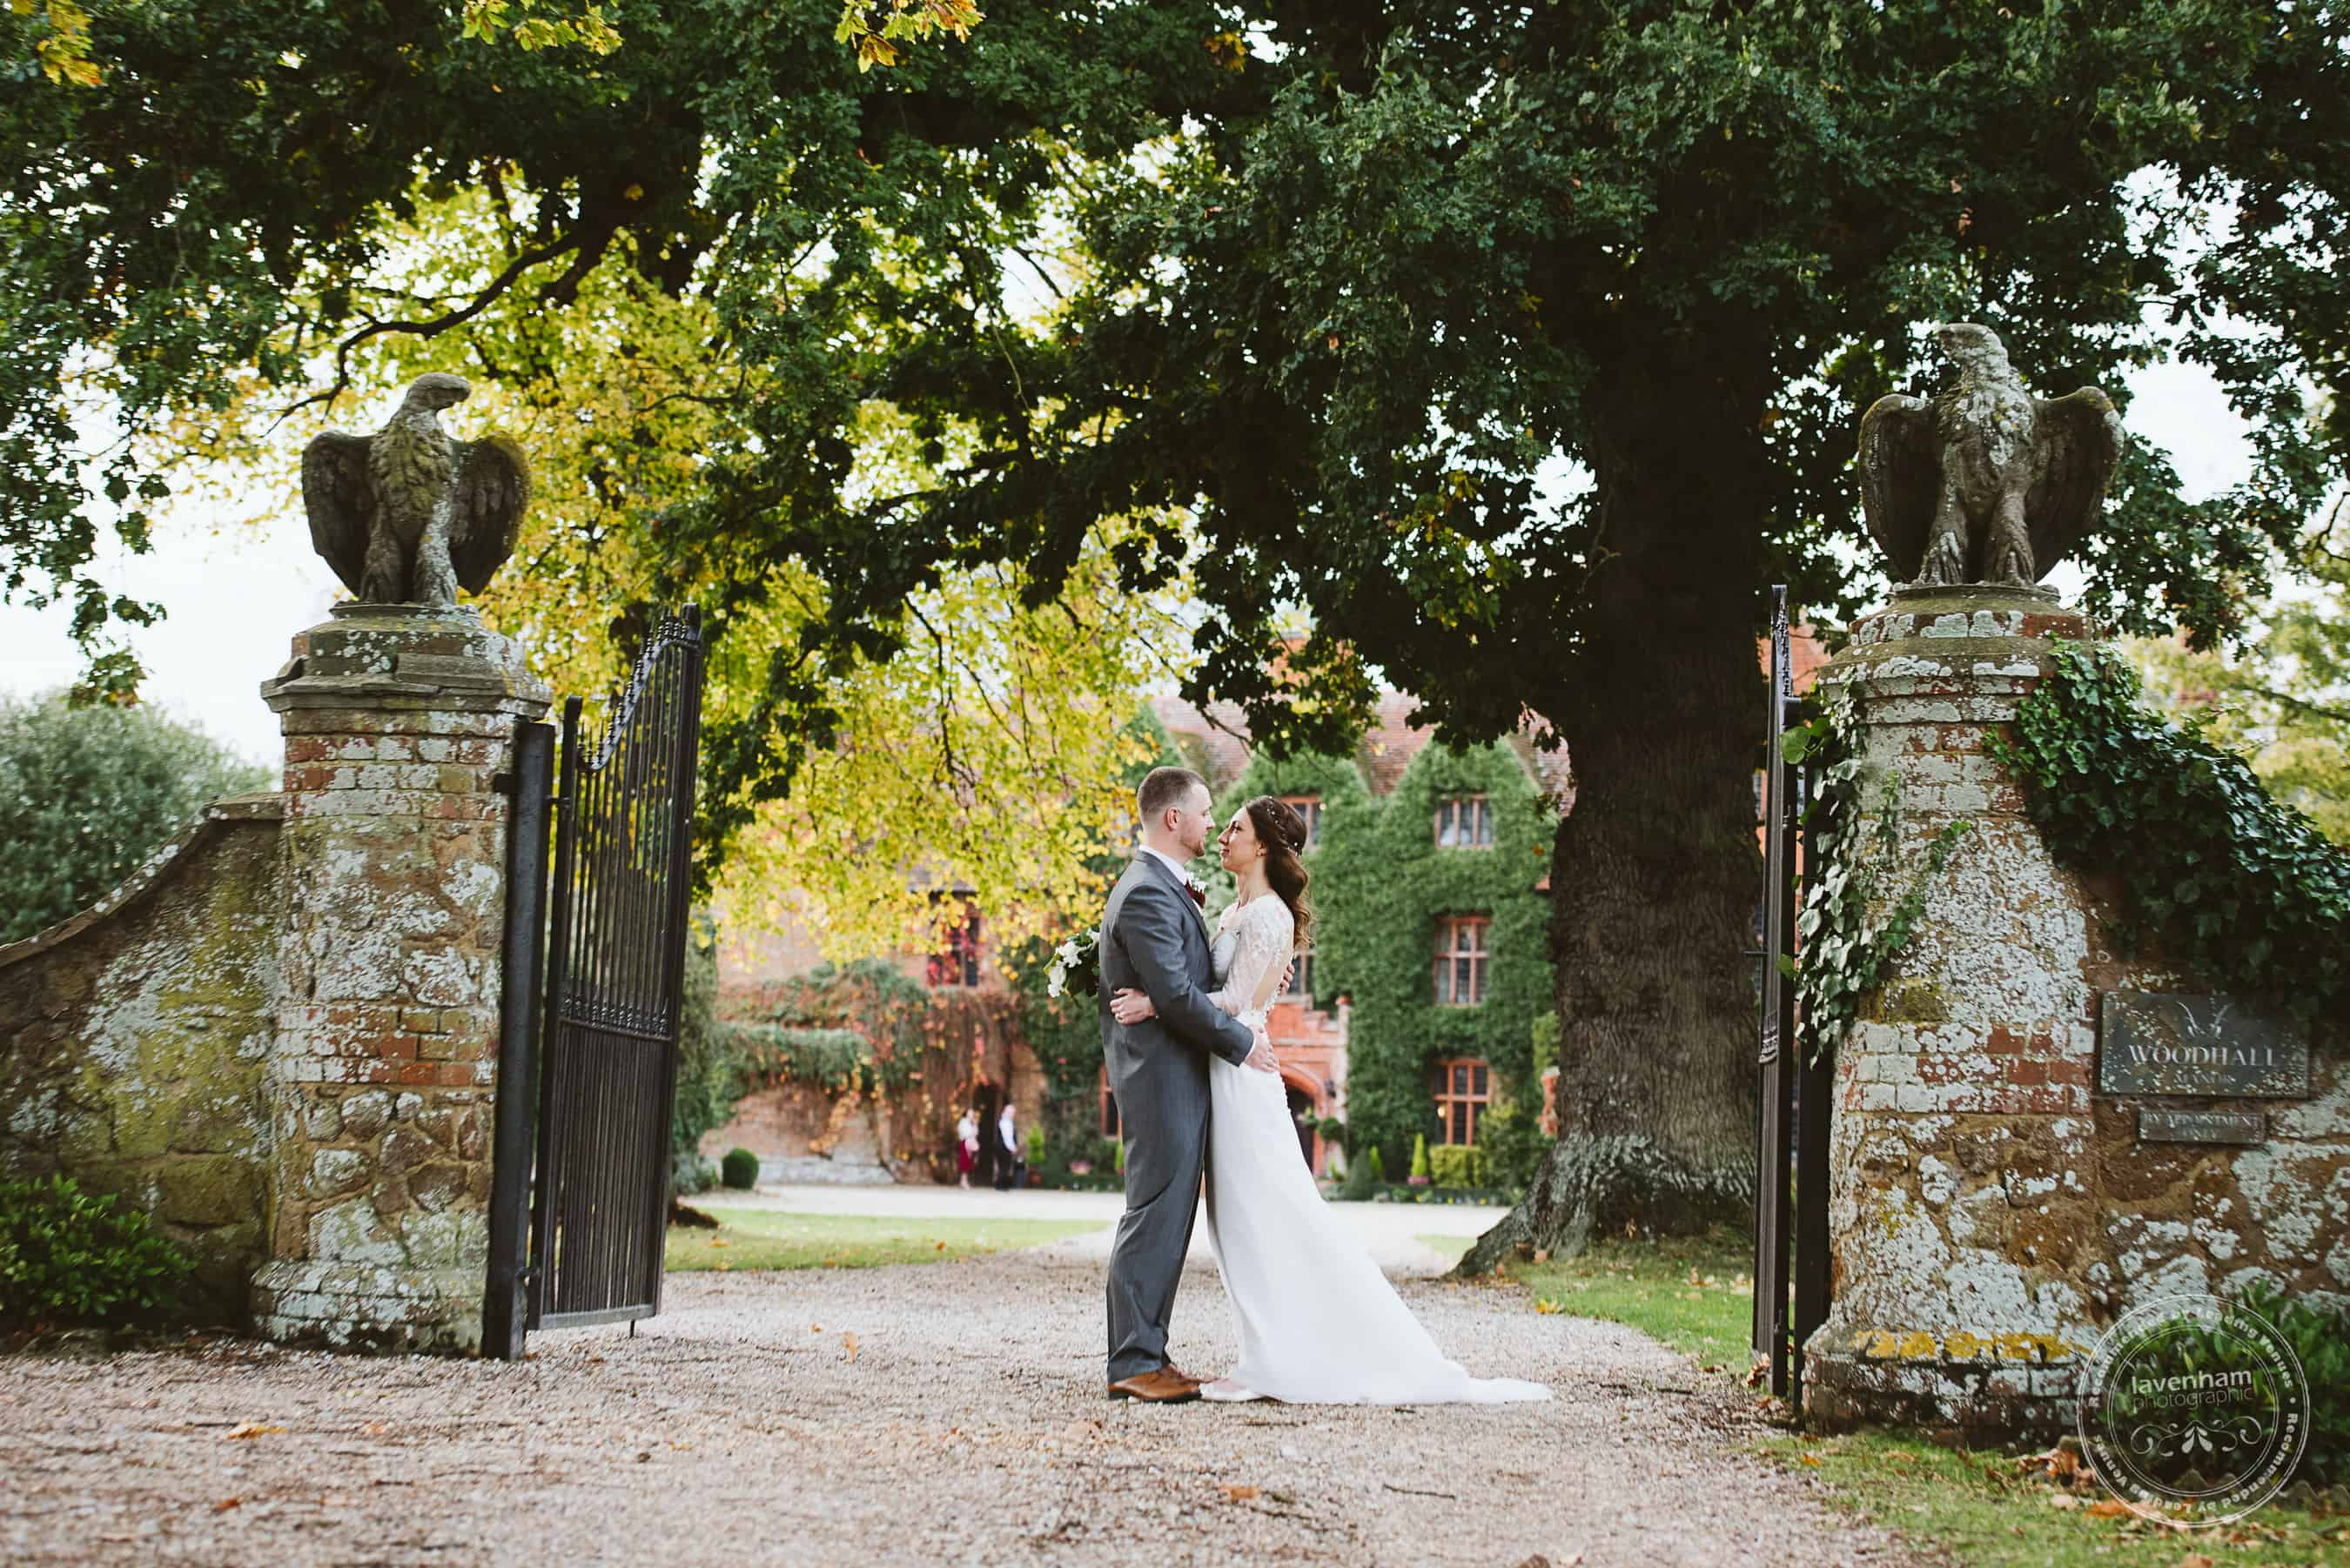 041118 Woodhall Manor Wedding Photography by Lavenham Photographic 100